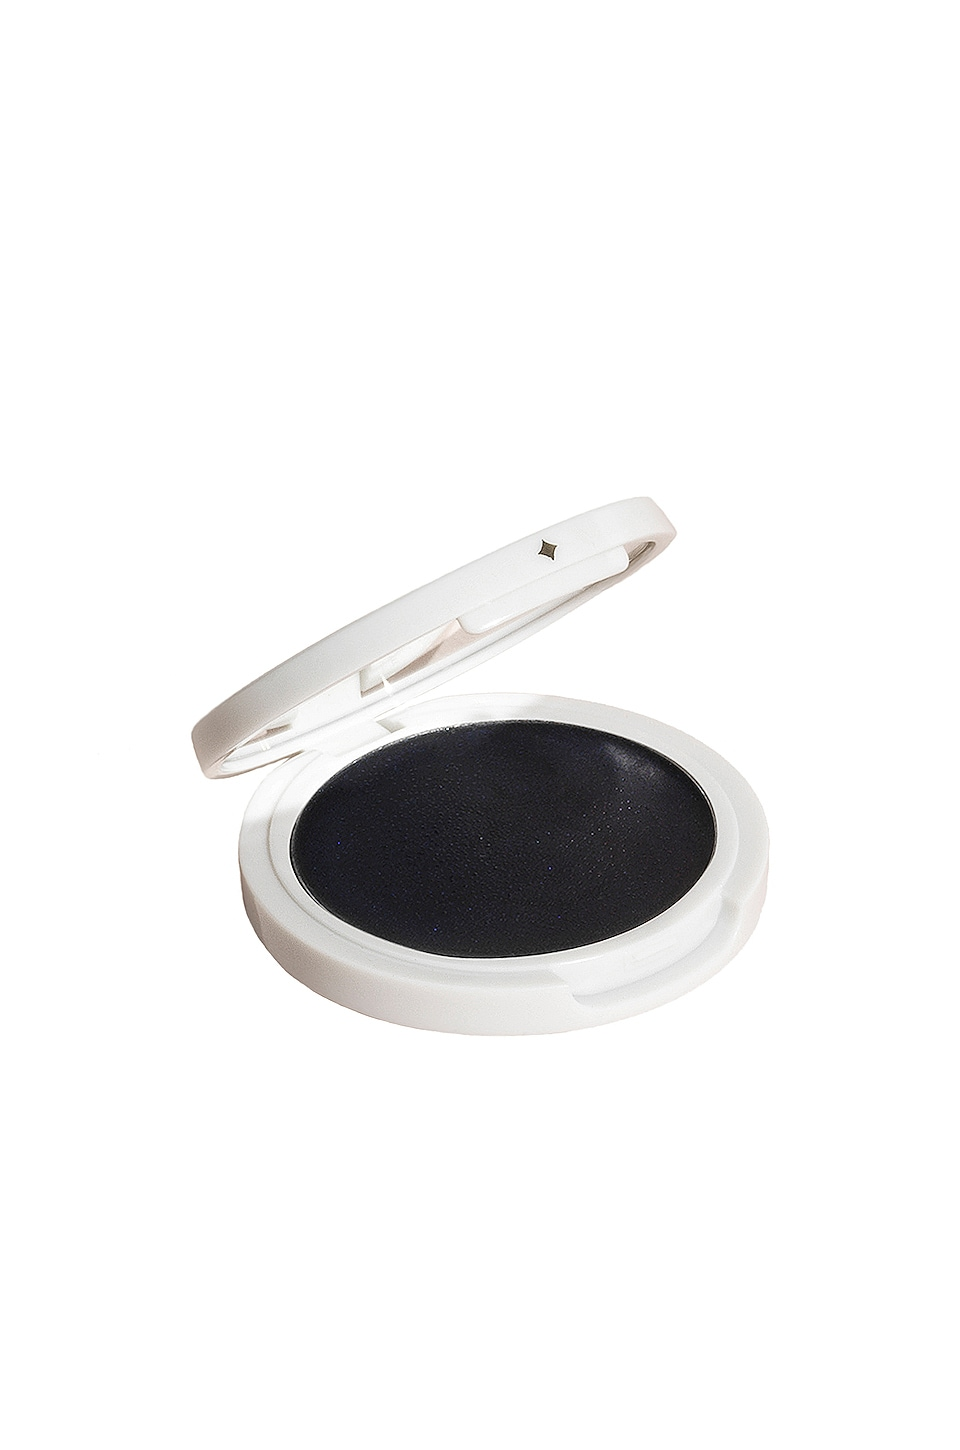 Jillian Dempsey Lid Tint Satin Eye Shadow in Smoke